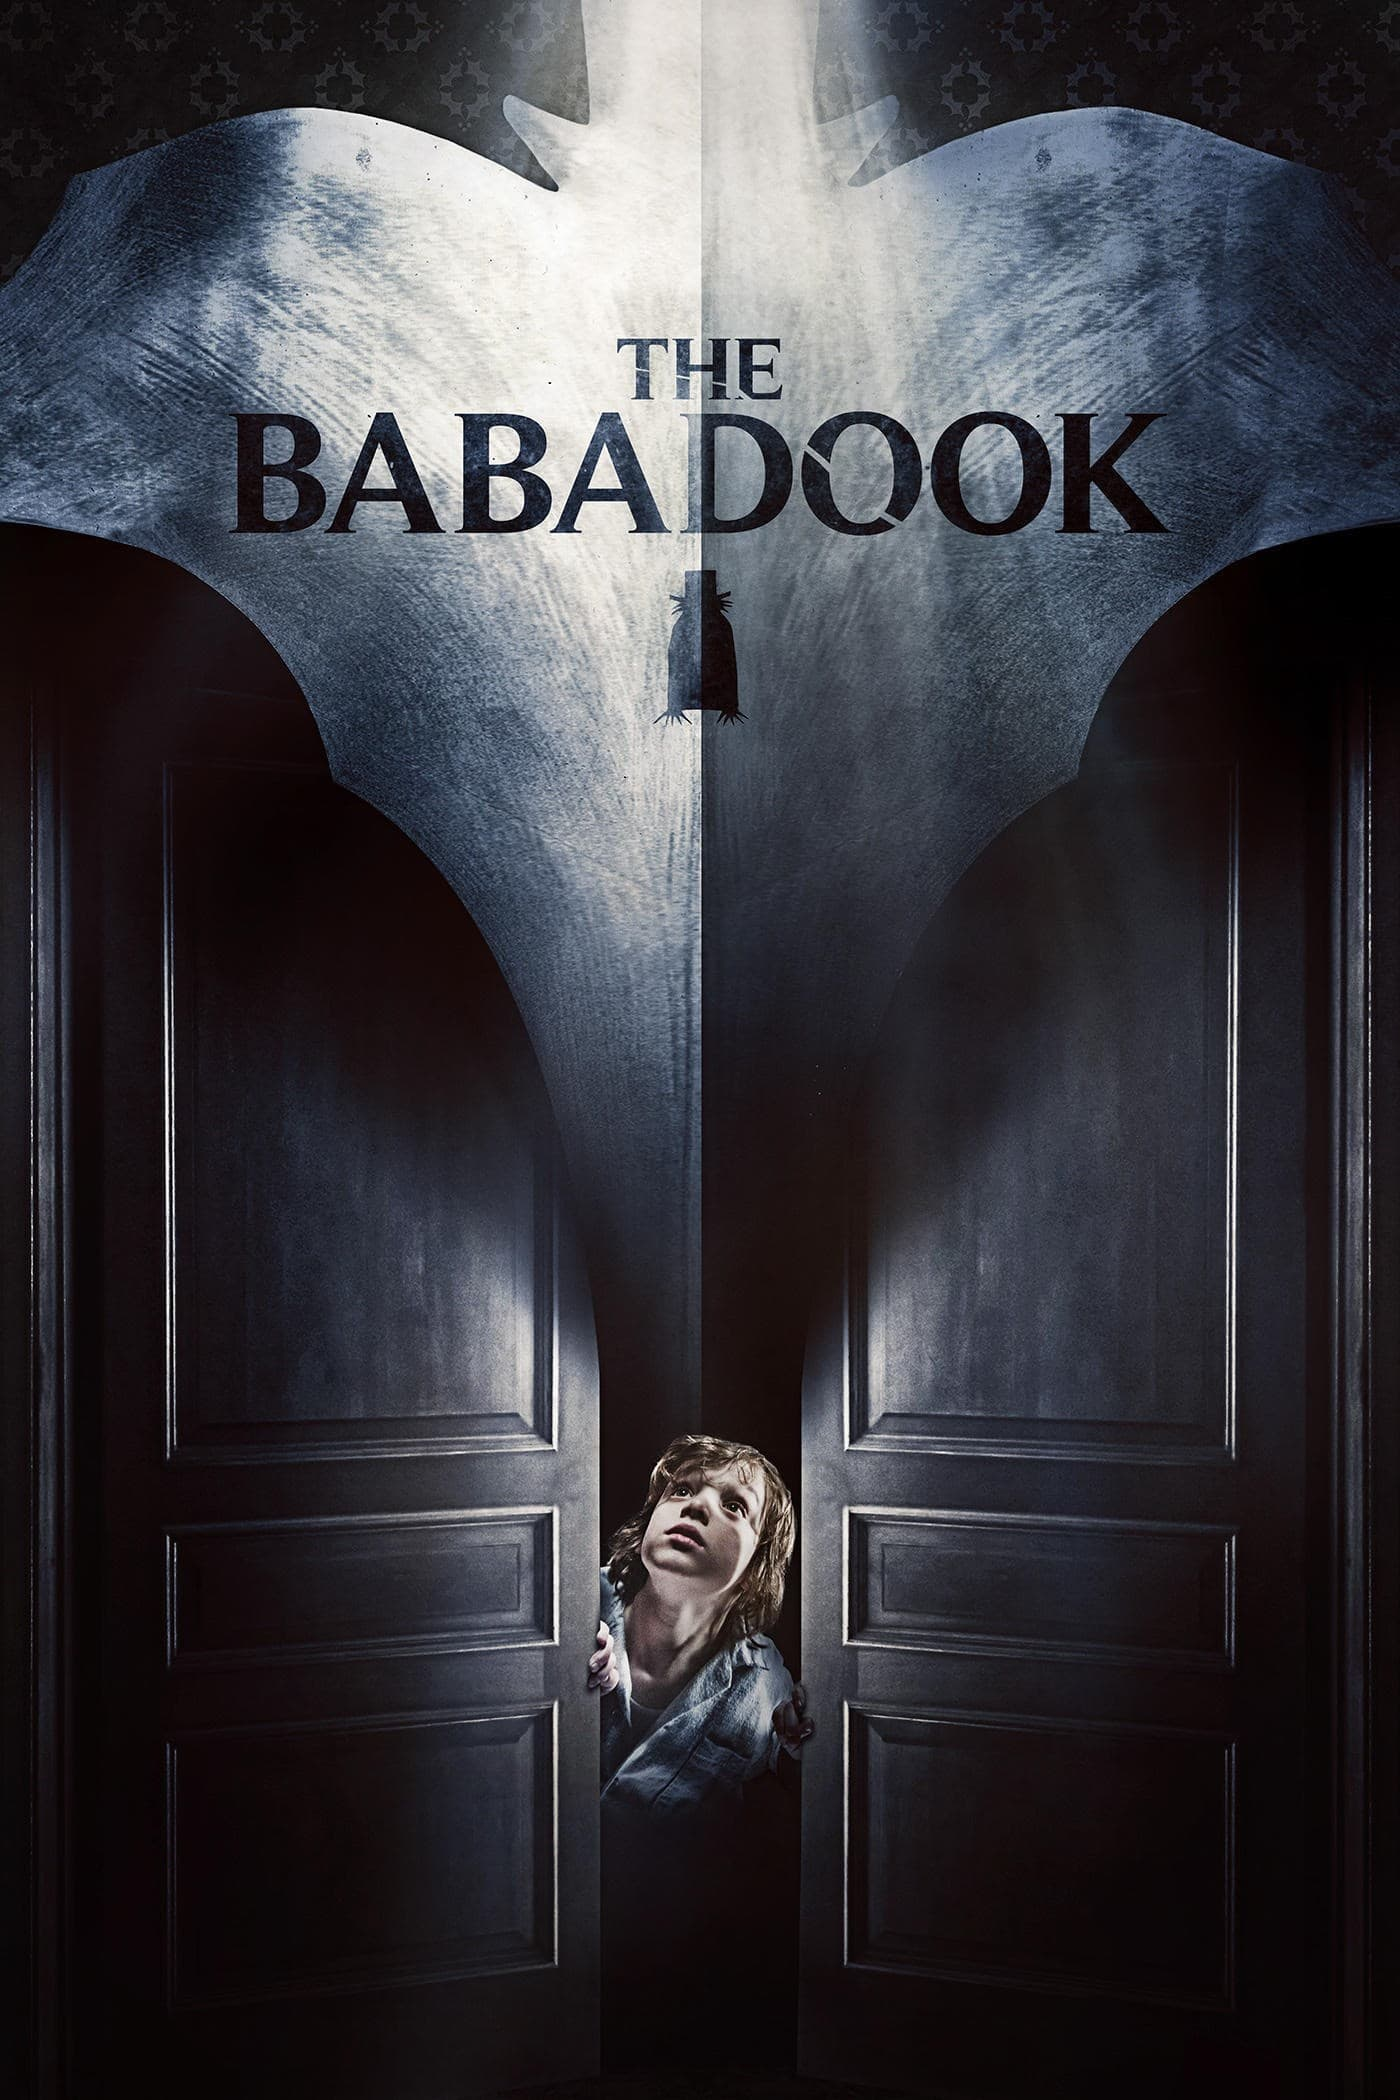 The Babadook For mobile